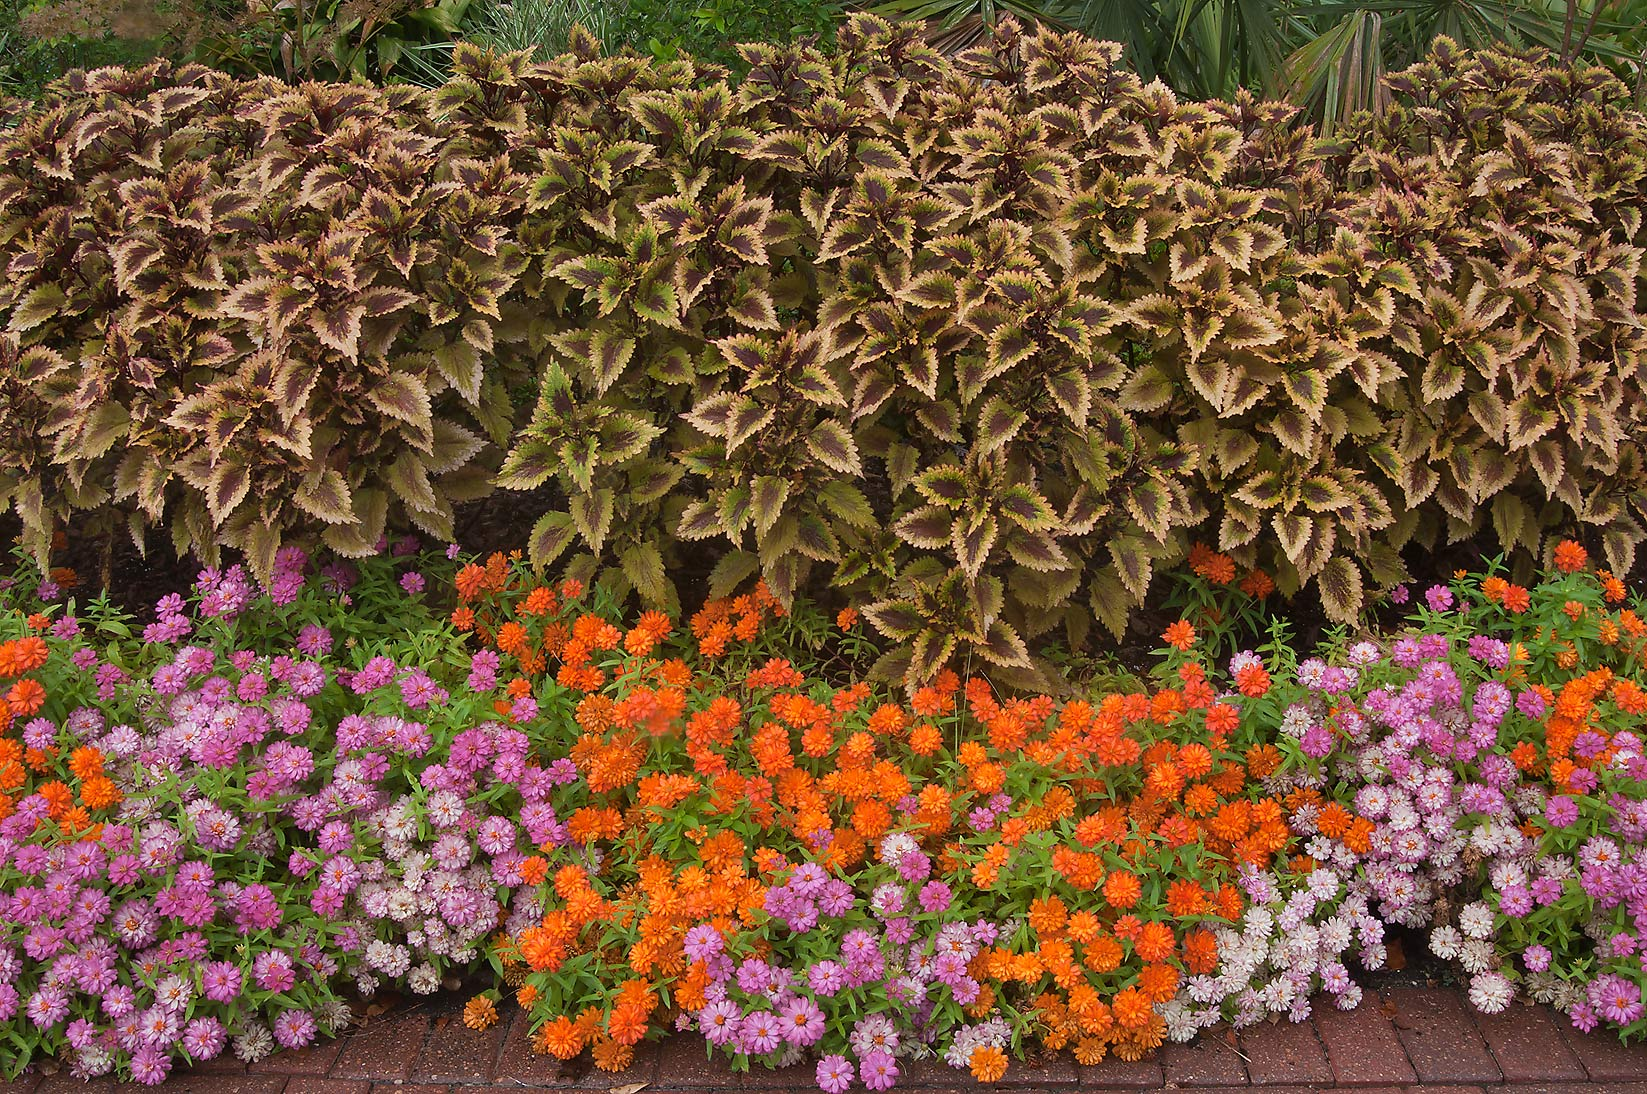 Coleus and profusion zinnia in Mercer Arboretum...Gardens. Humble (Houston area), Texas